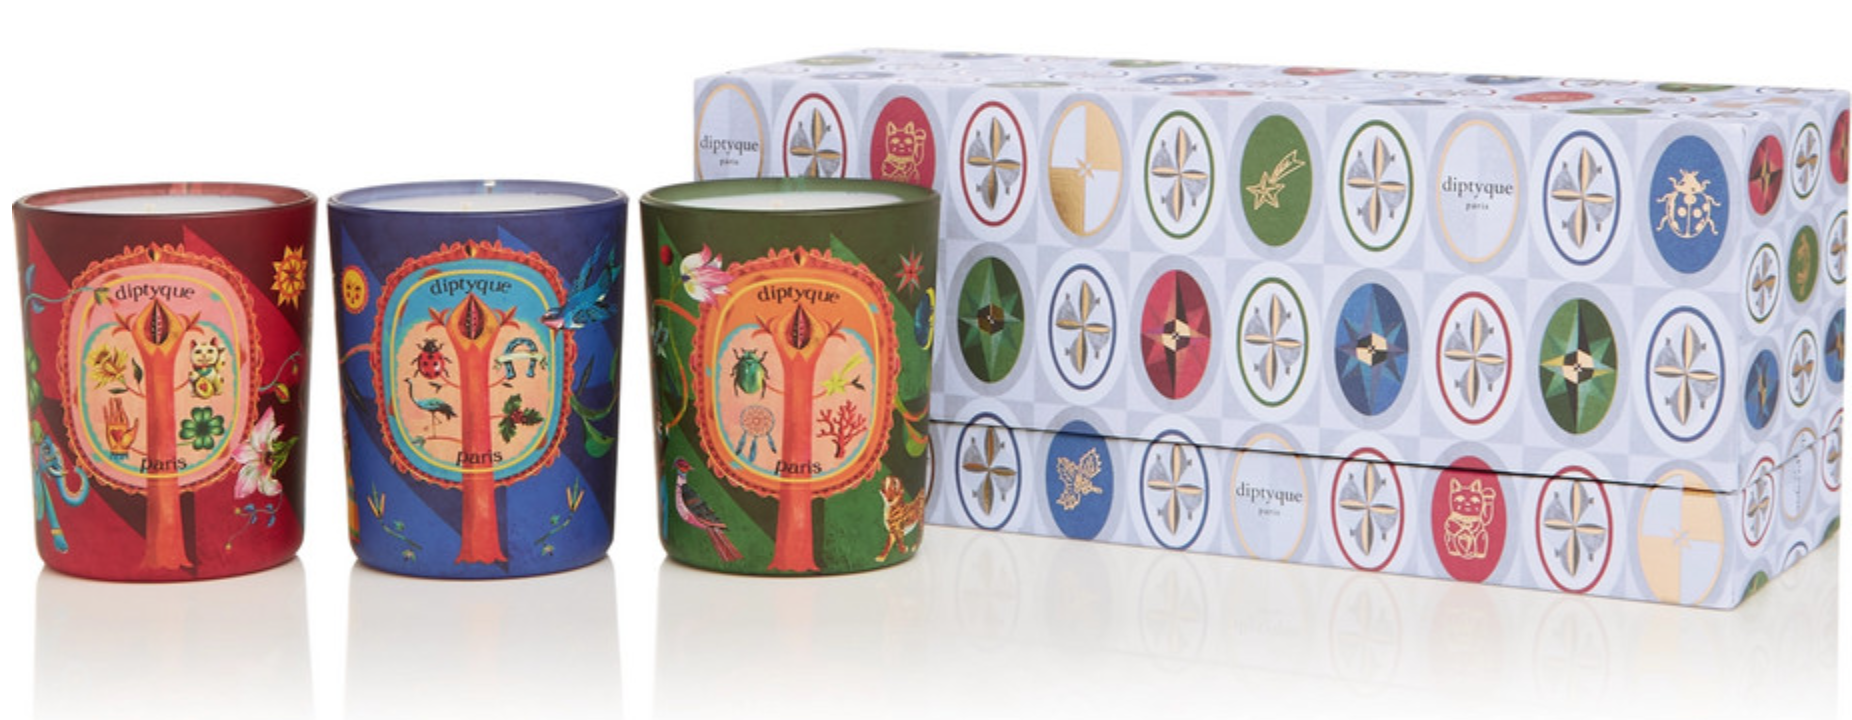 DIPTYQUE Set of three scented candles